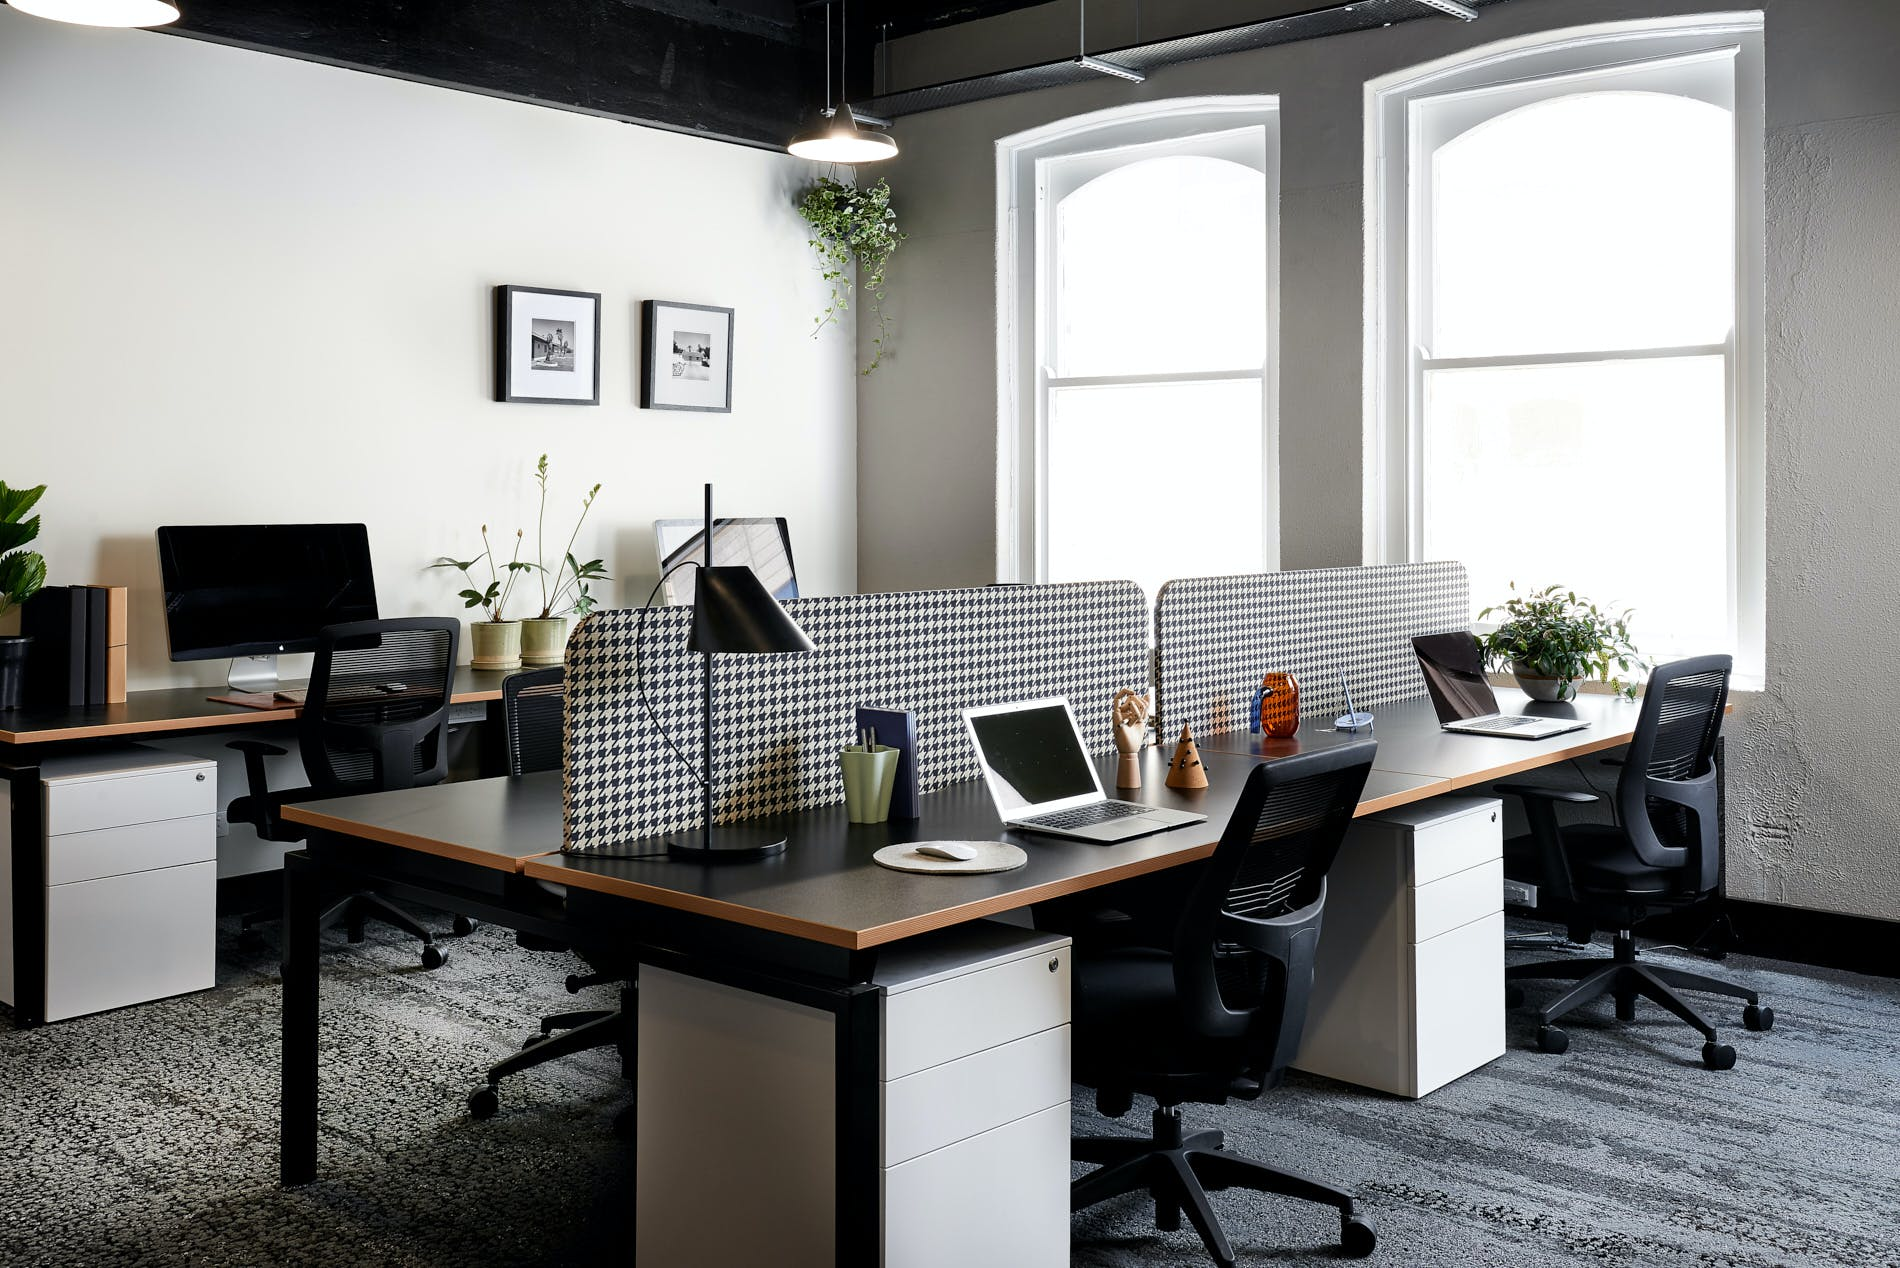 The Productive, private office at Plus U, image 1